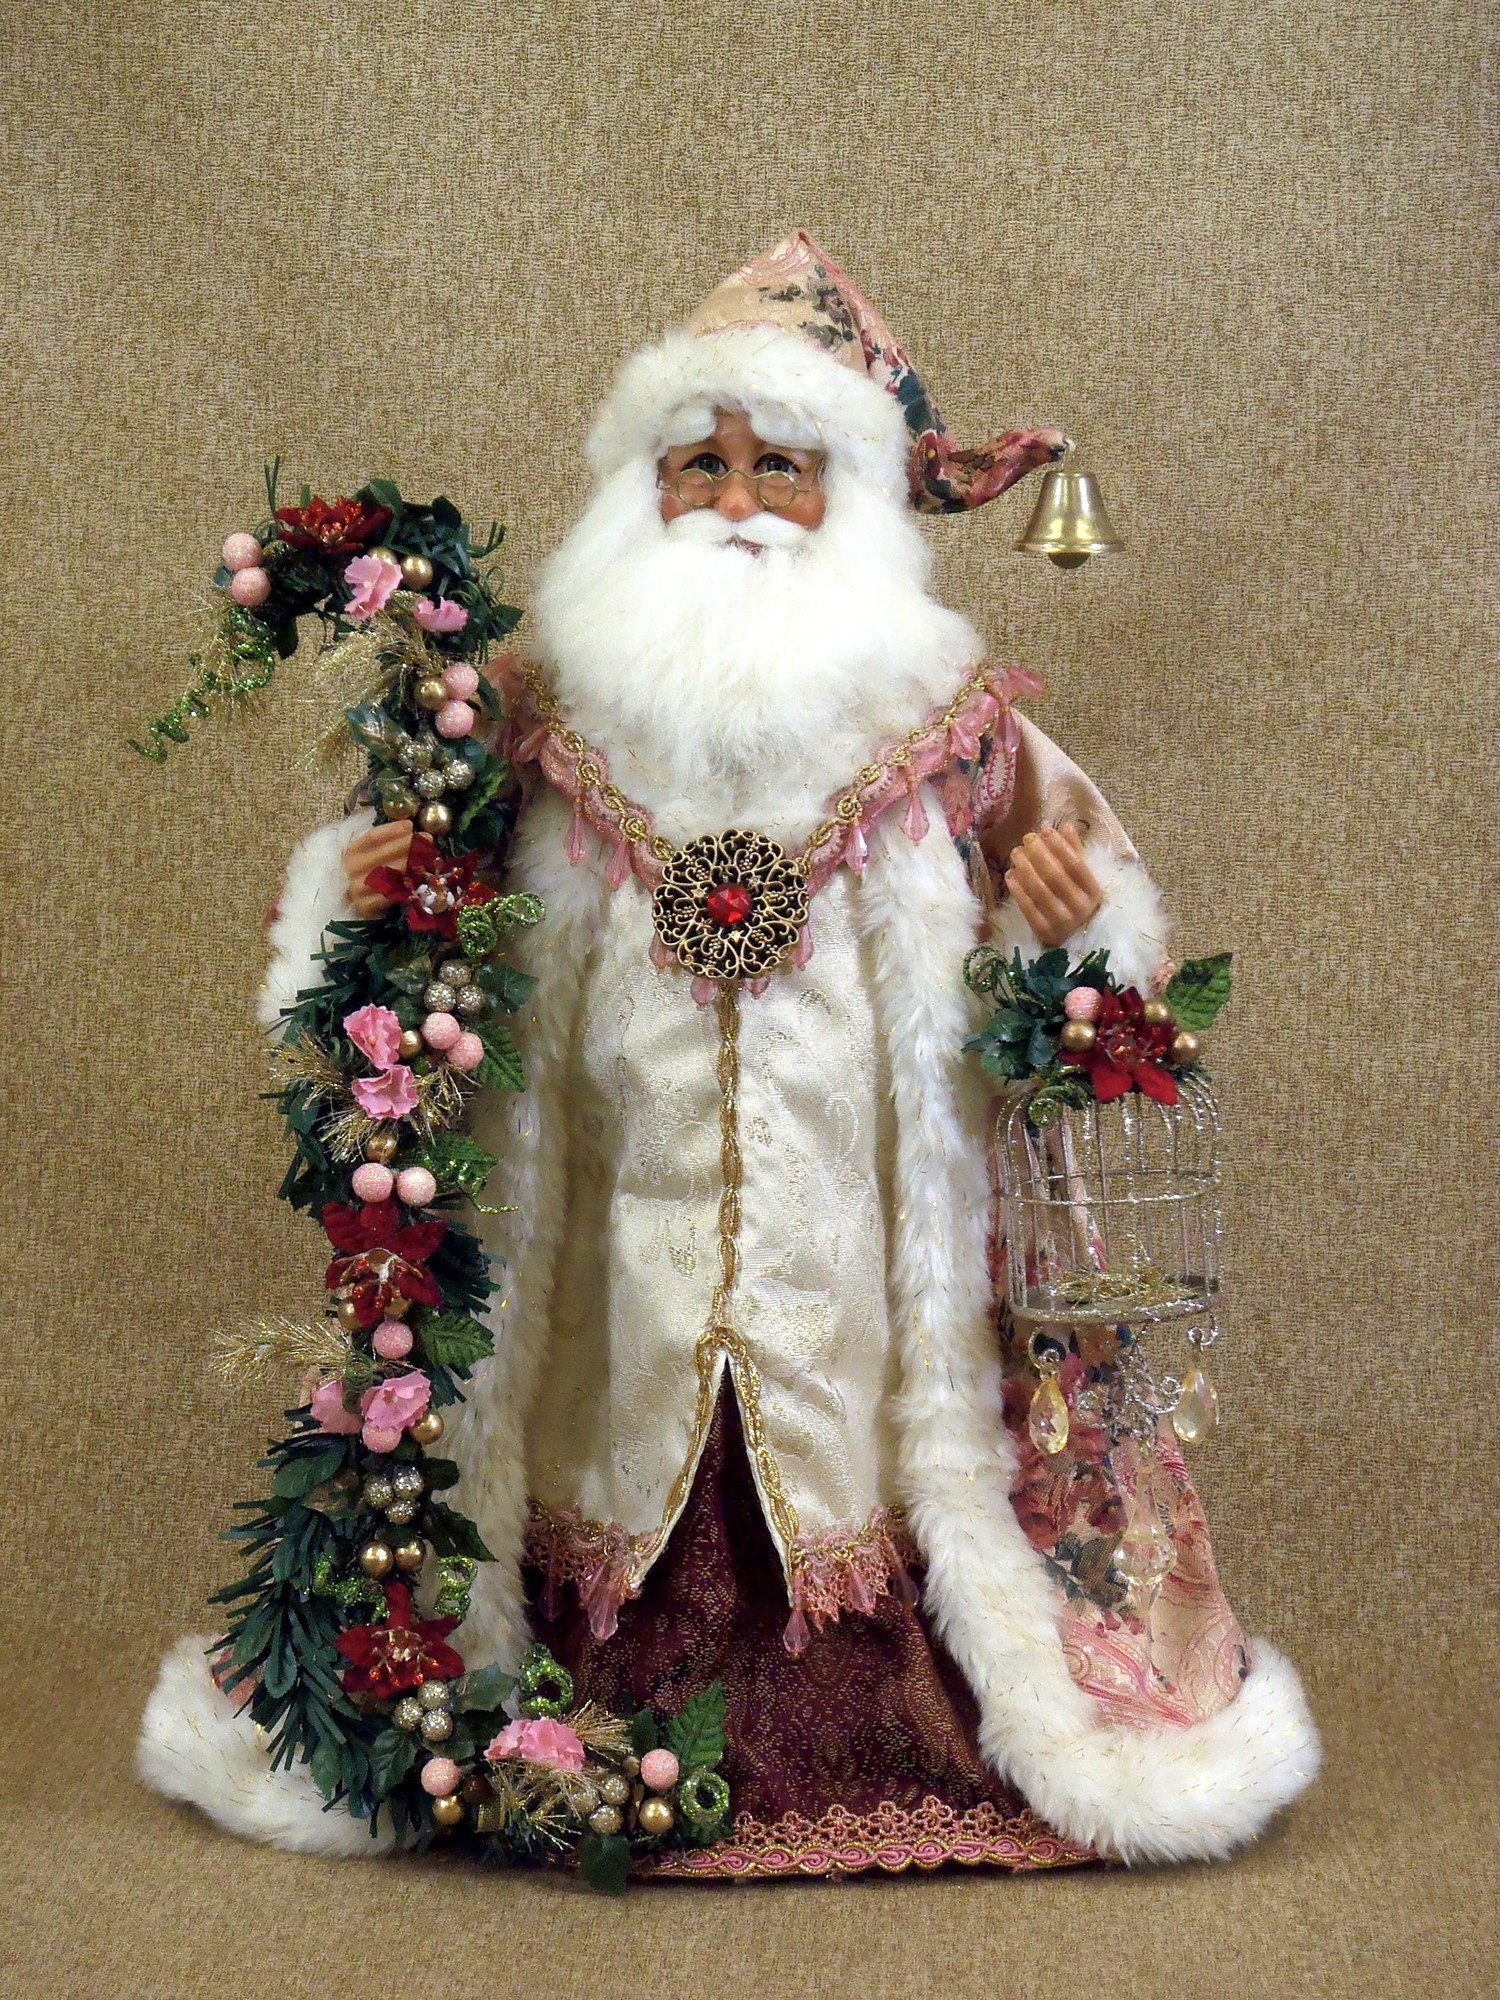 The santa claus figurine wallpapers high quality